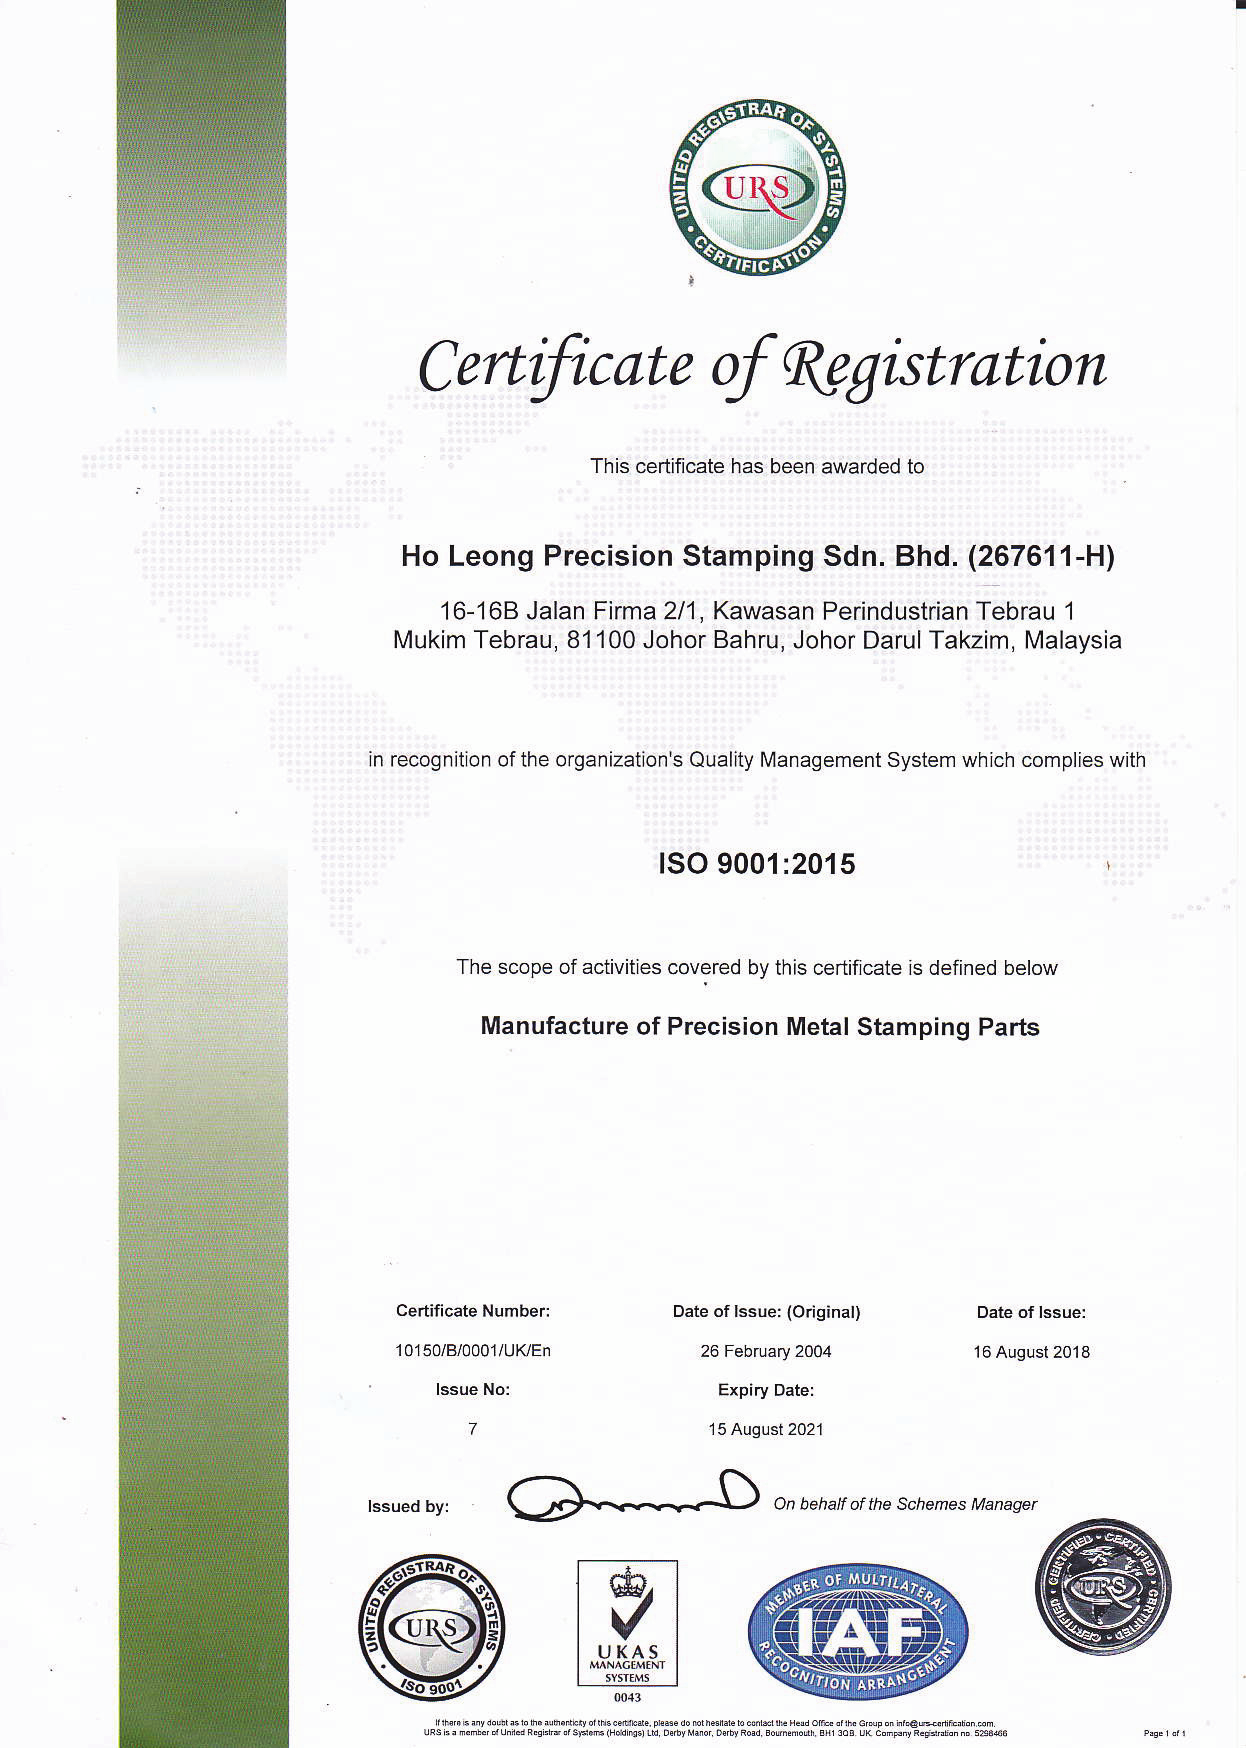 Certificate of Registration – ISO 9001:2015